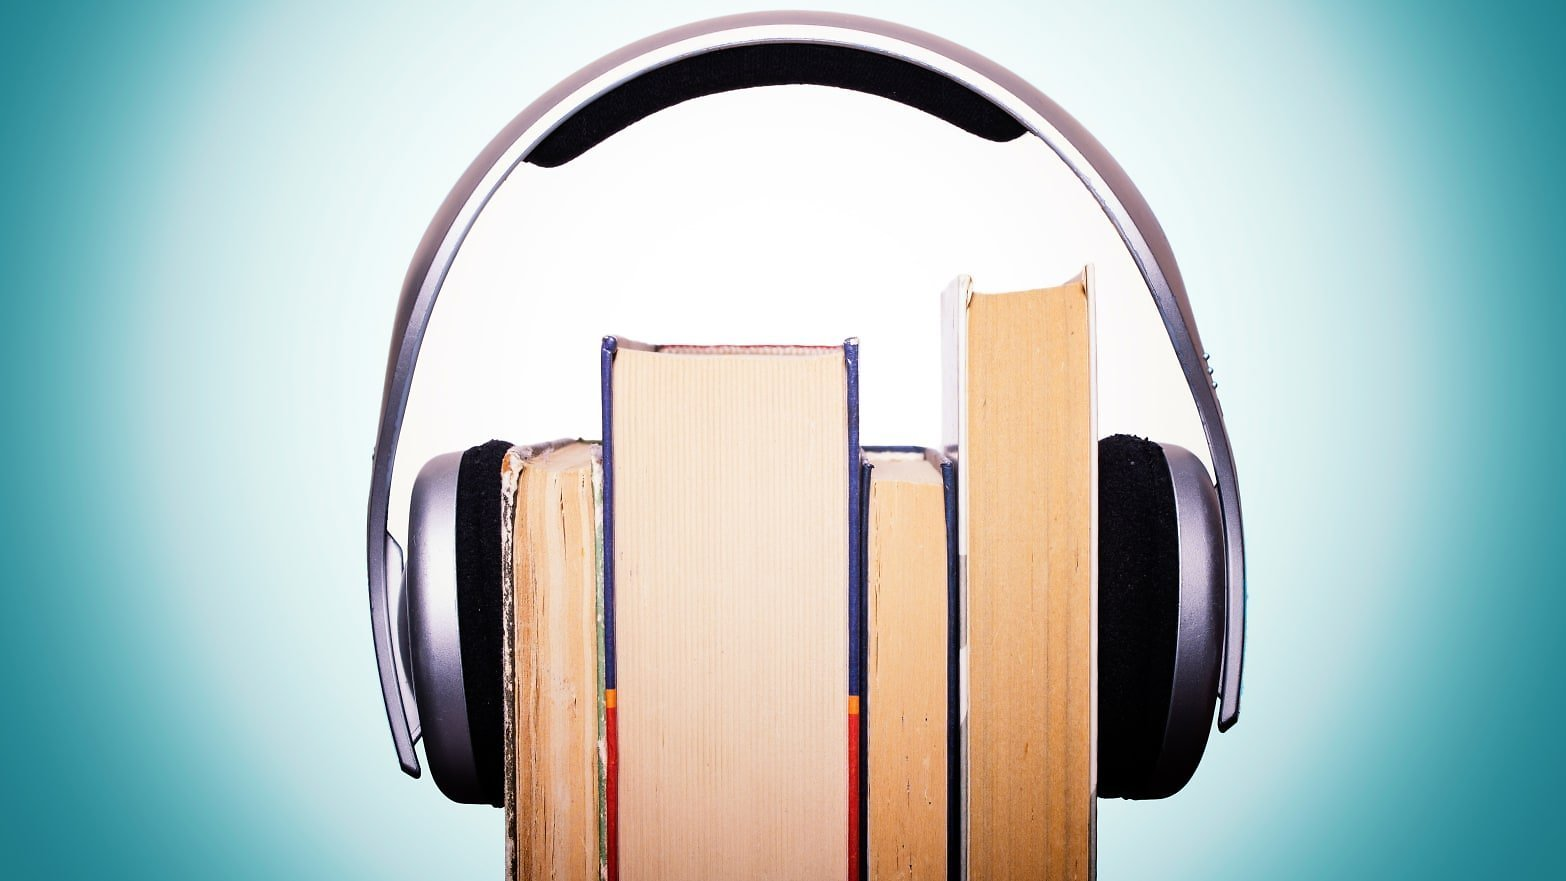 BOGO Free Audible Audiobooks (Select Users)